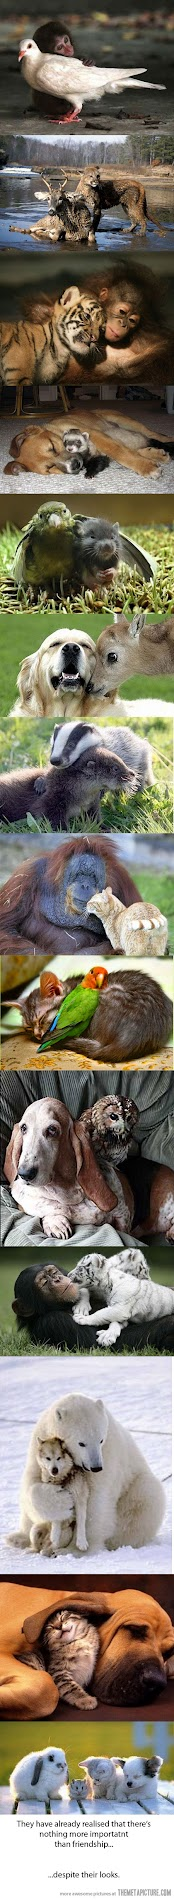 we can all be friends